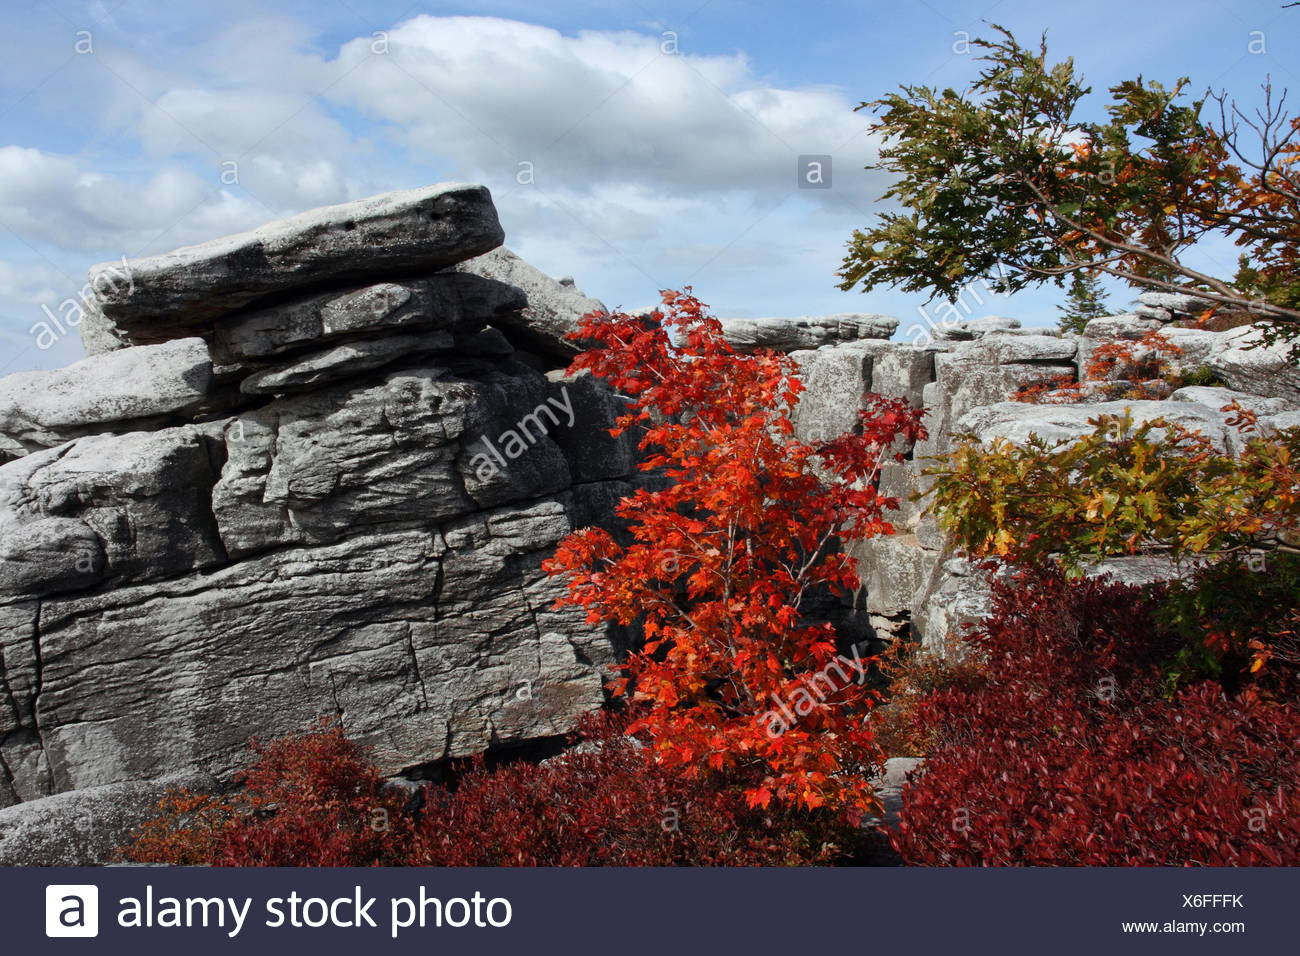 Rocks jut out from autumn foliage in the Monongahela National Forest. - Stock Image